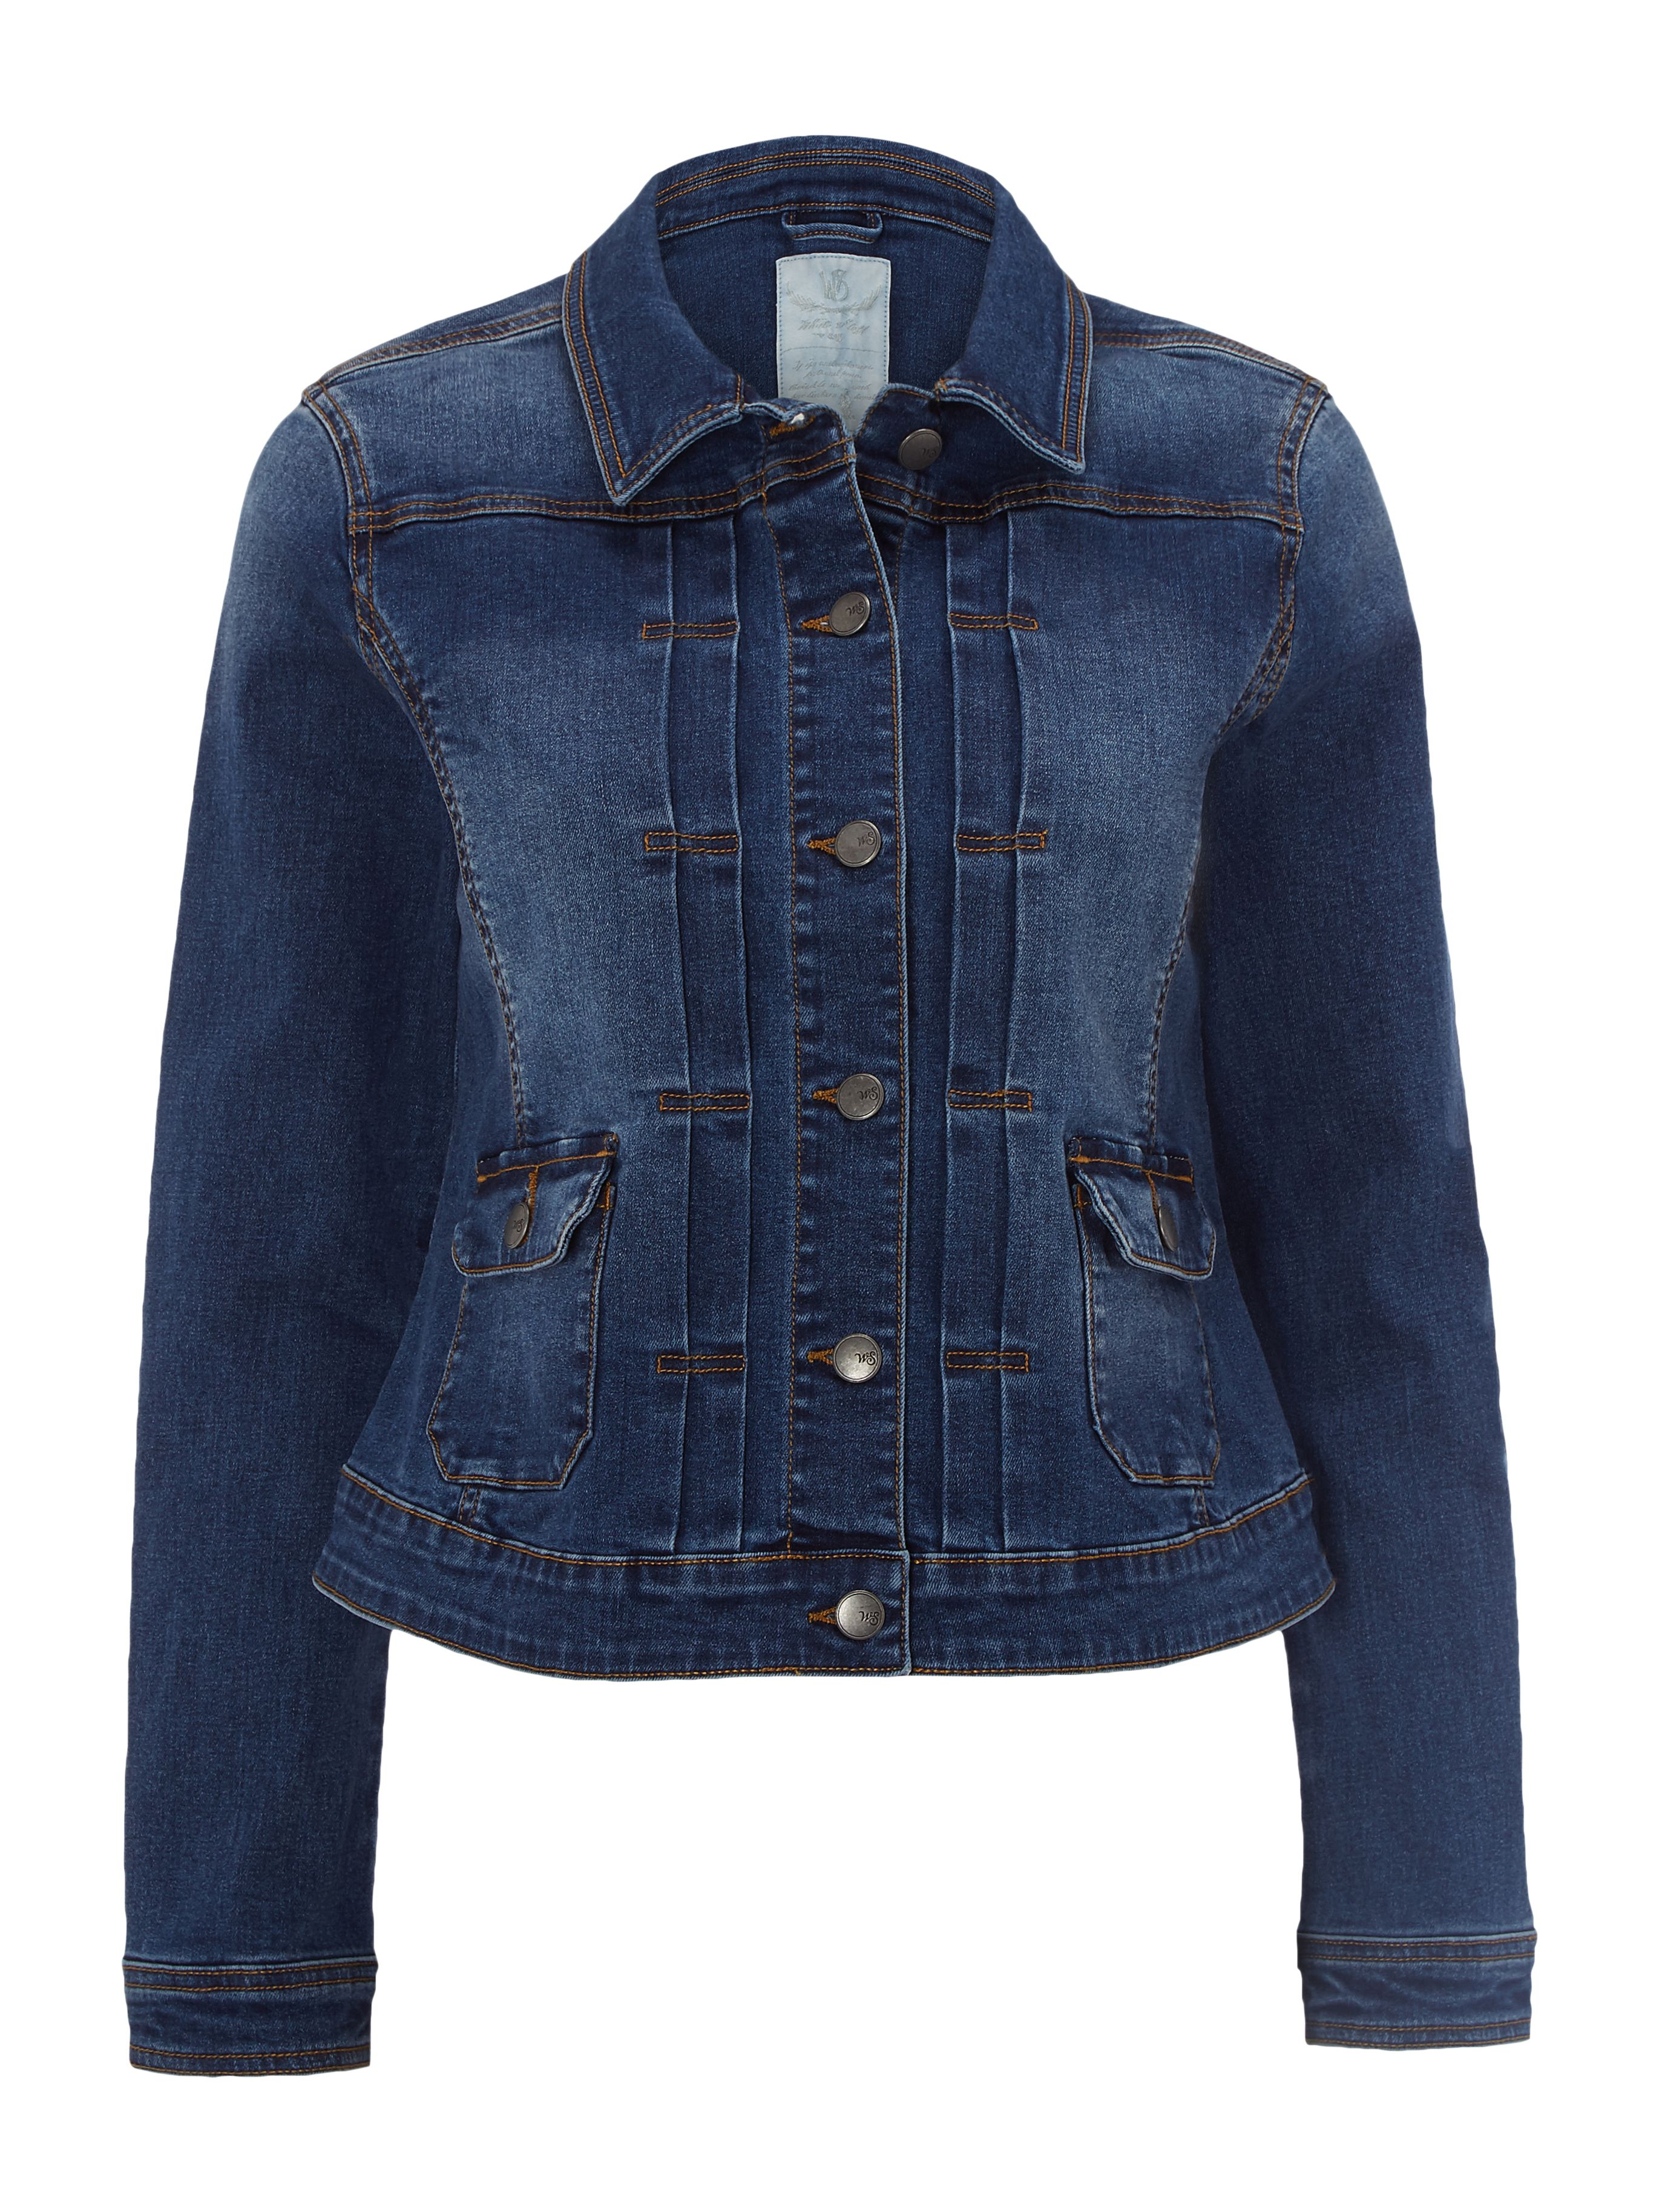 White Stuff Delilah Denim Jacket, Denim